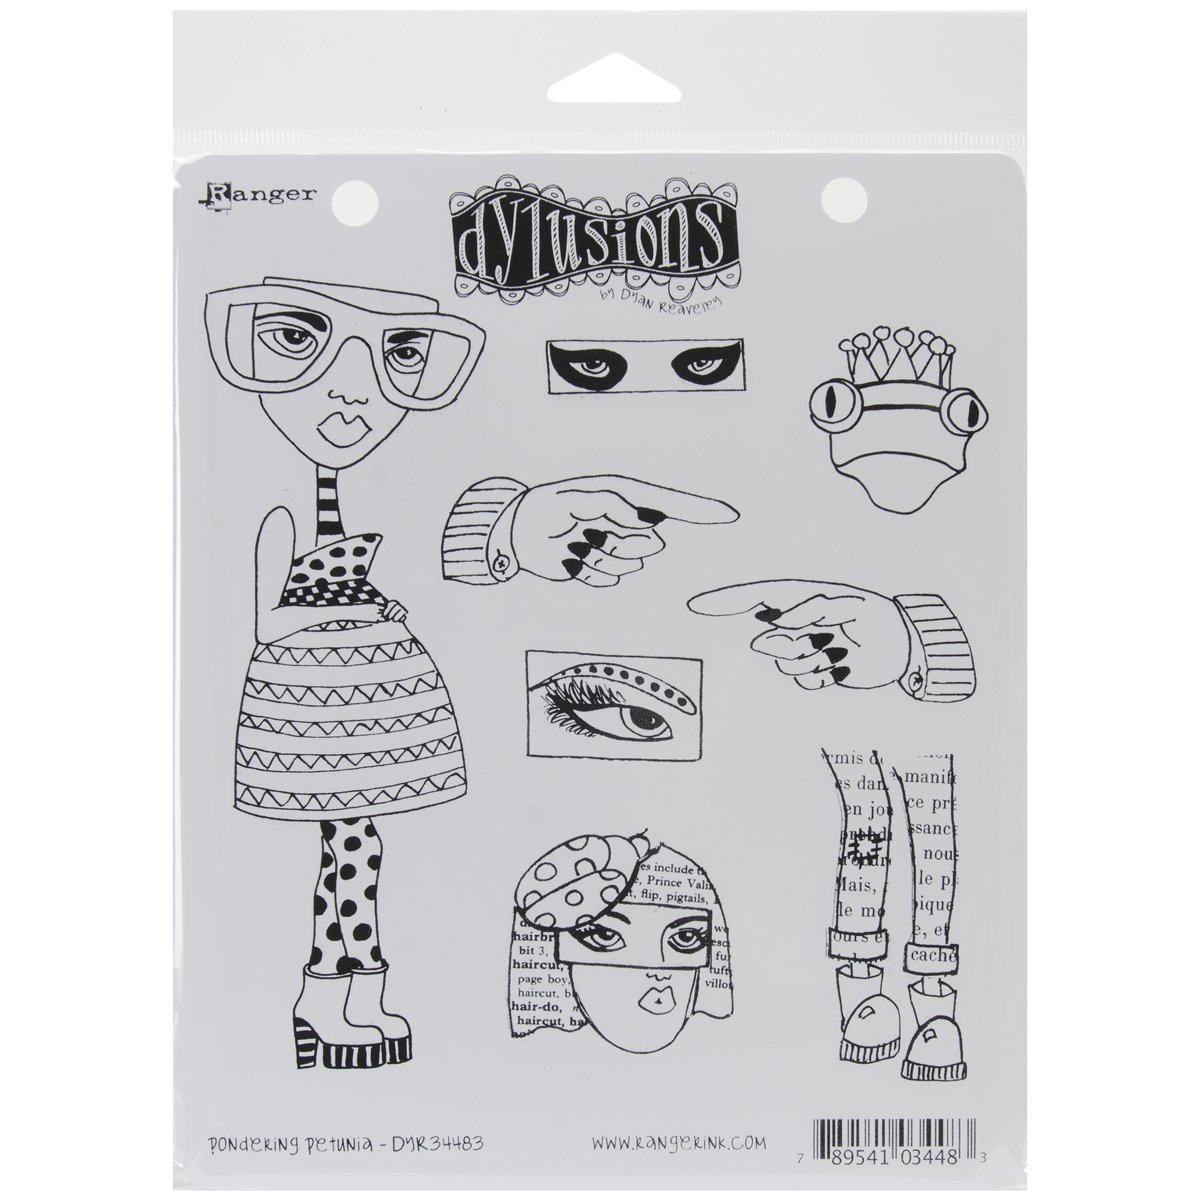 Ranger Dyan Reaveleys Dylusions Cling Stamp Collection Pondering Petunia (6 Pack)